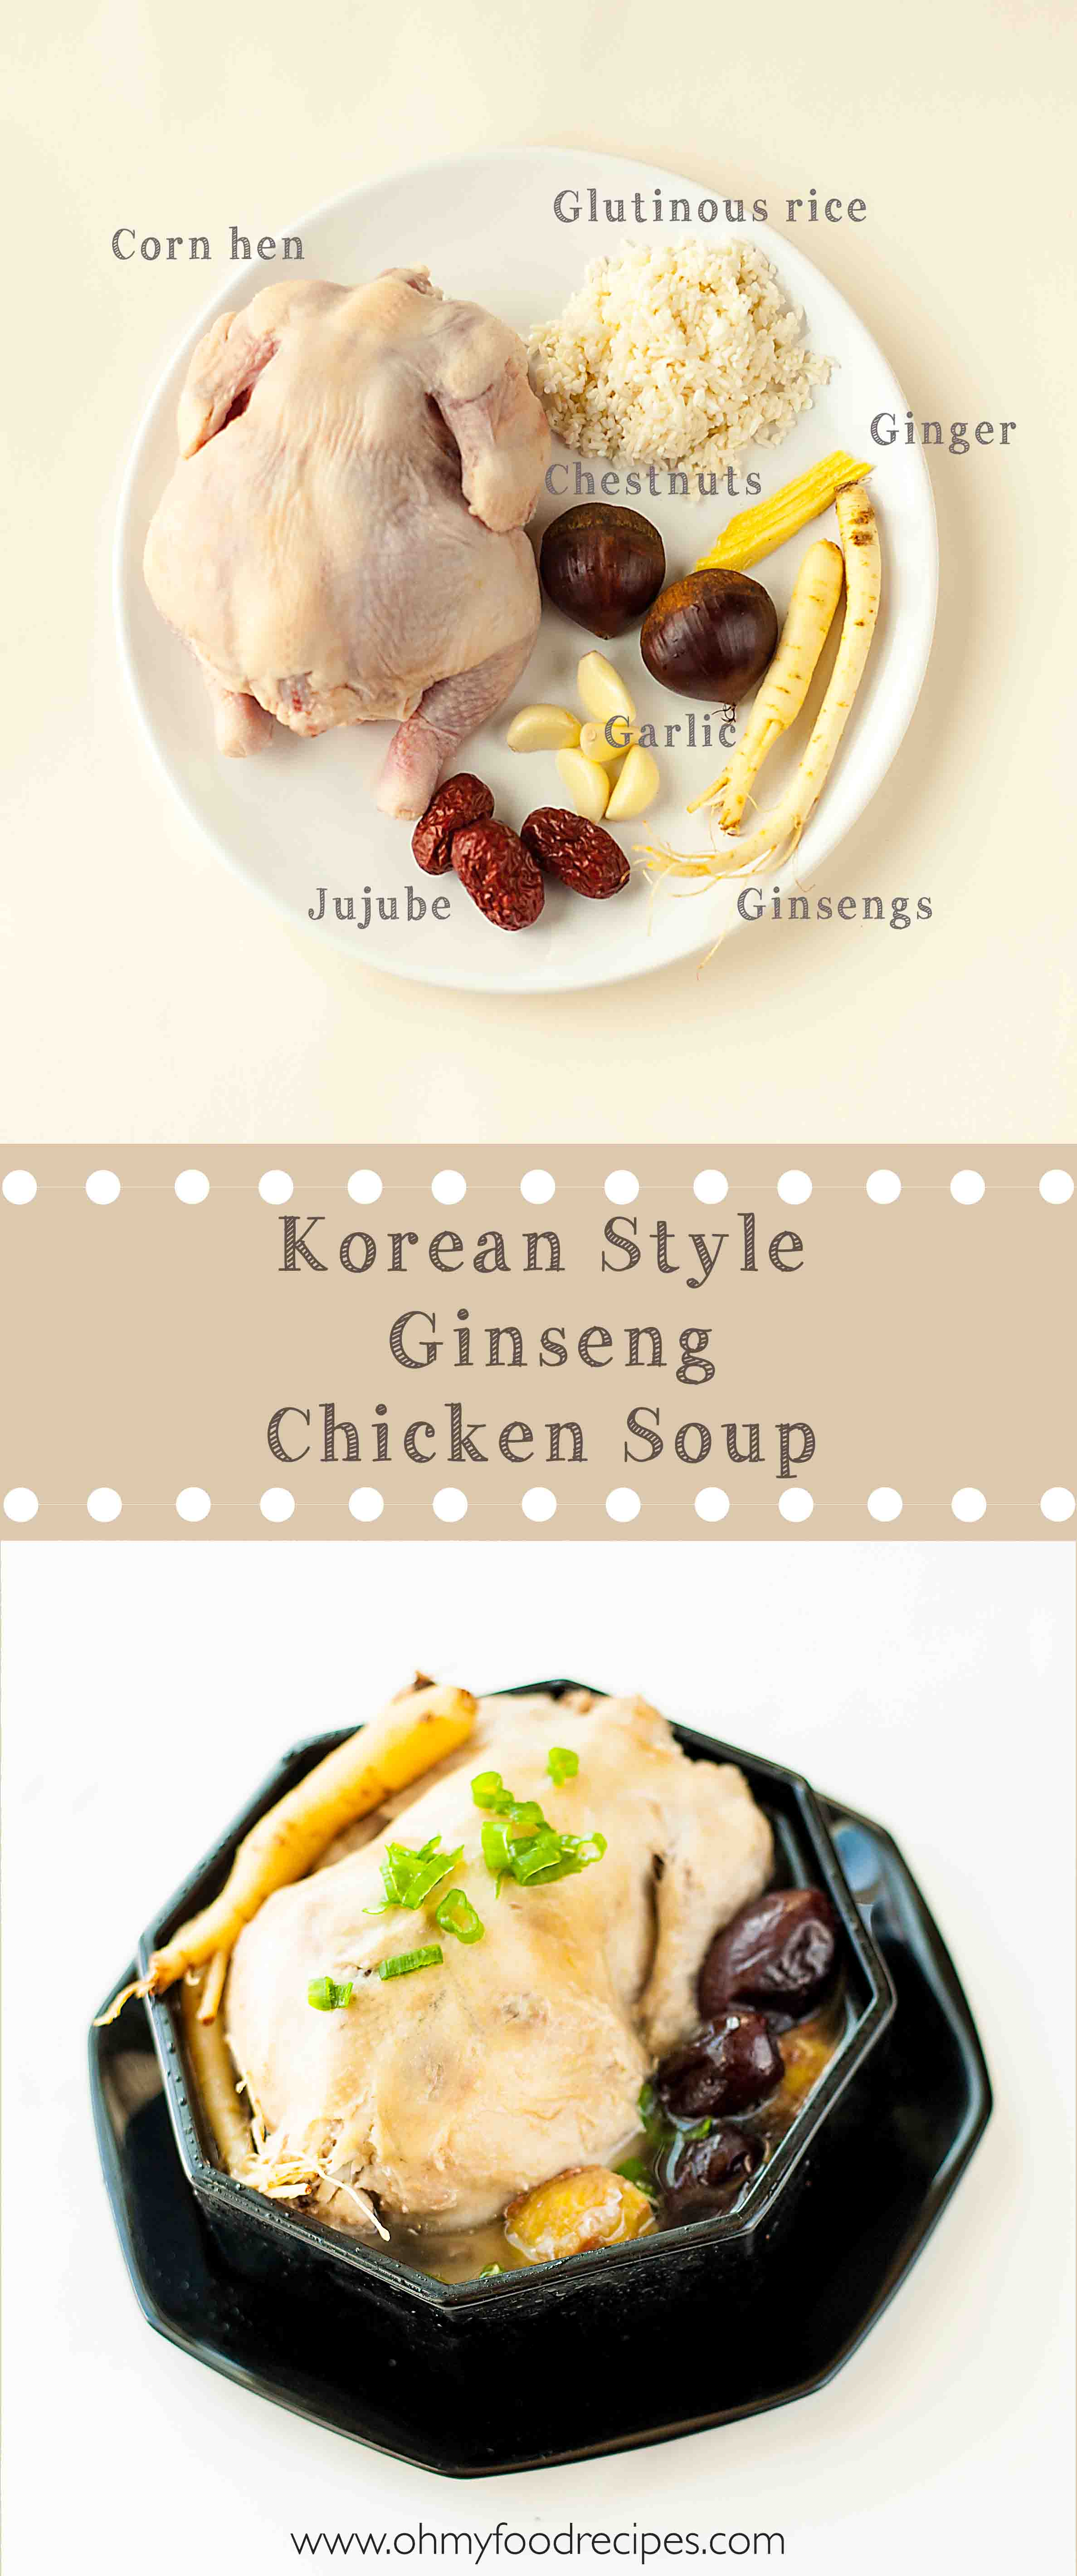 Korean style Ginseng Chicken soup instant pot